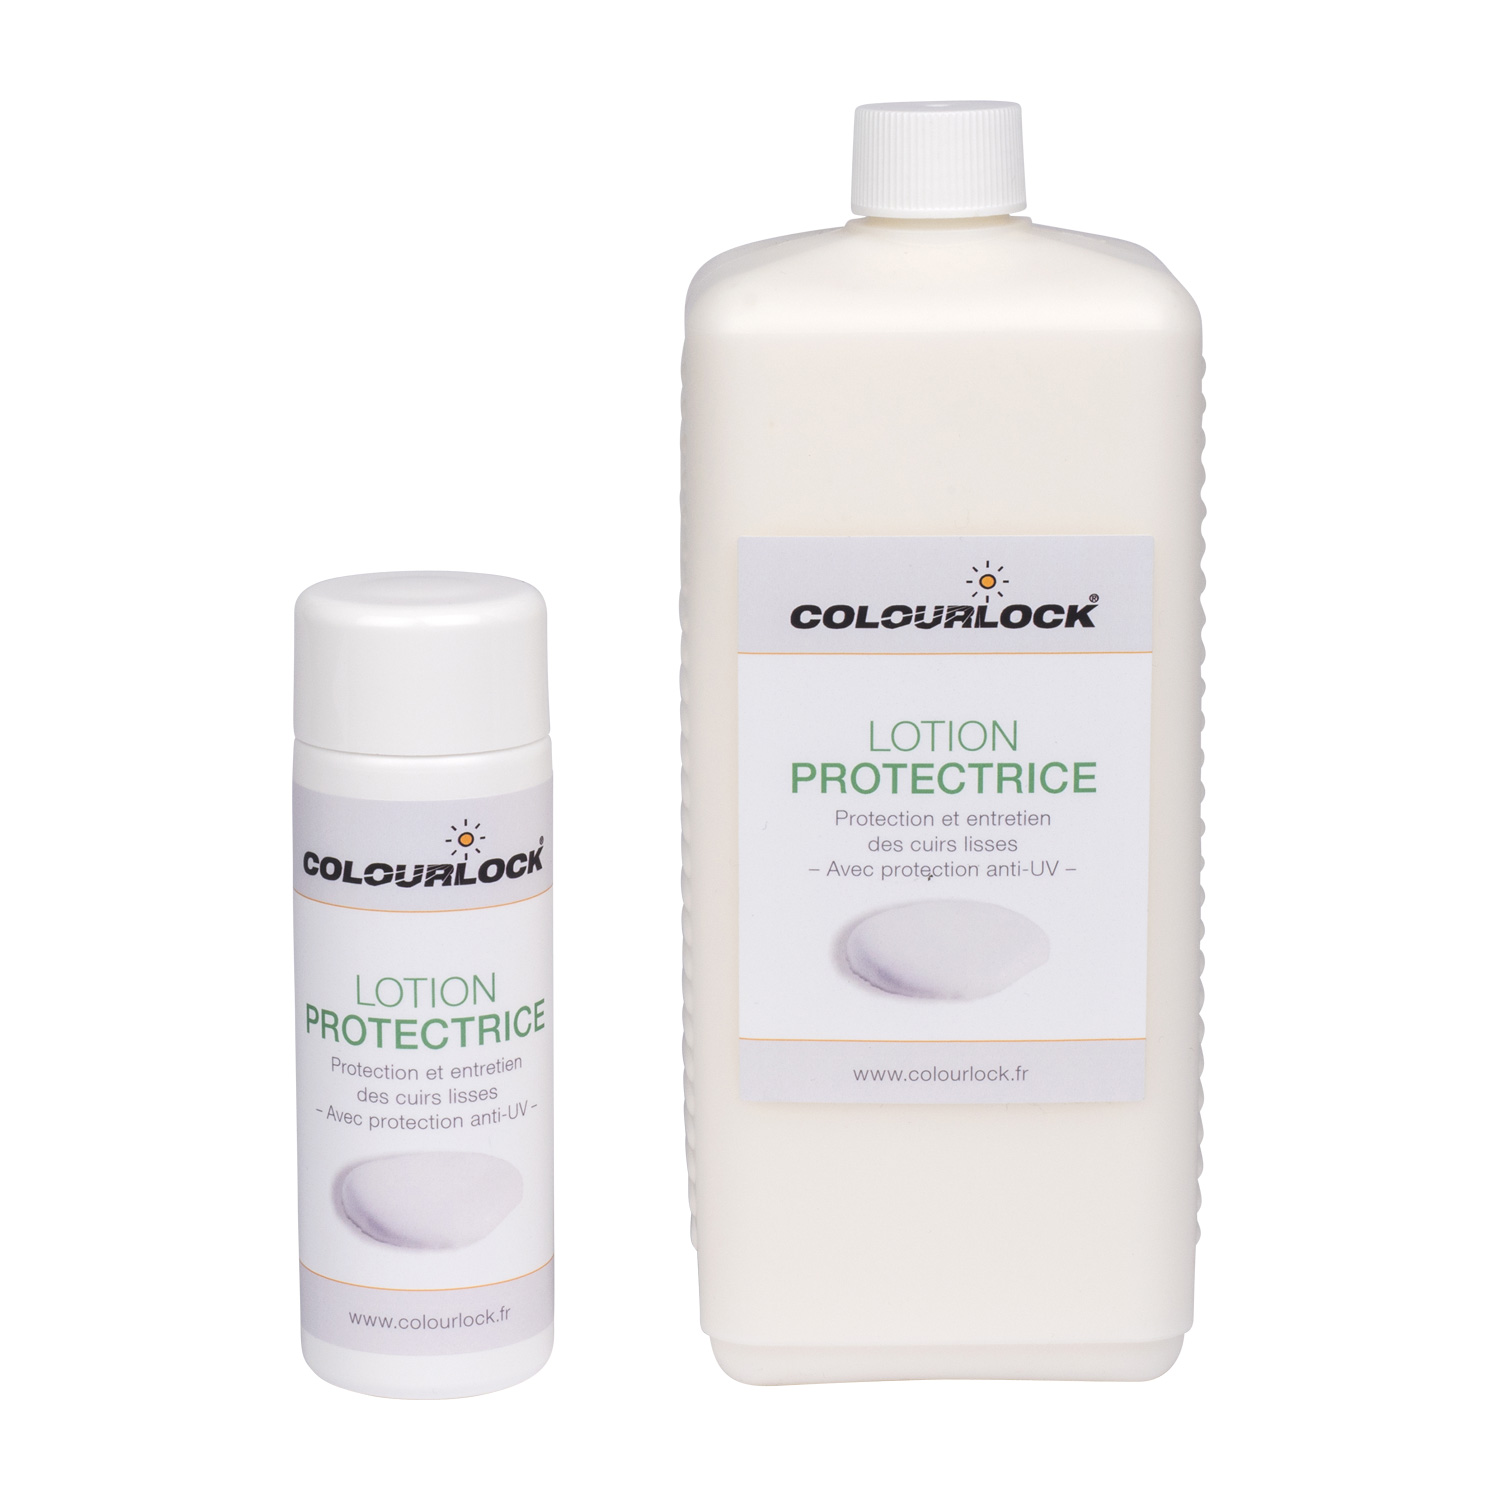 Lotion protectrice COLOURLOCK, 150 ml